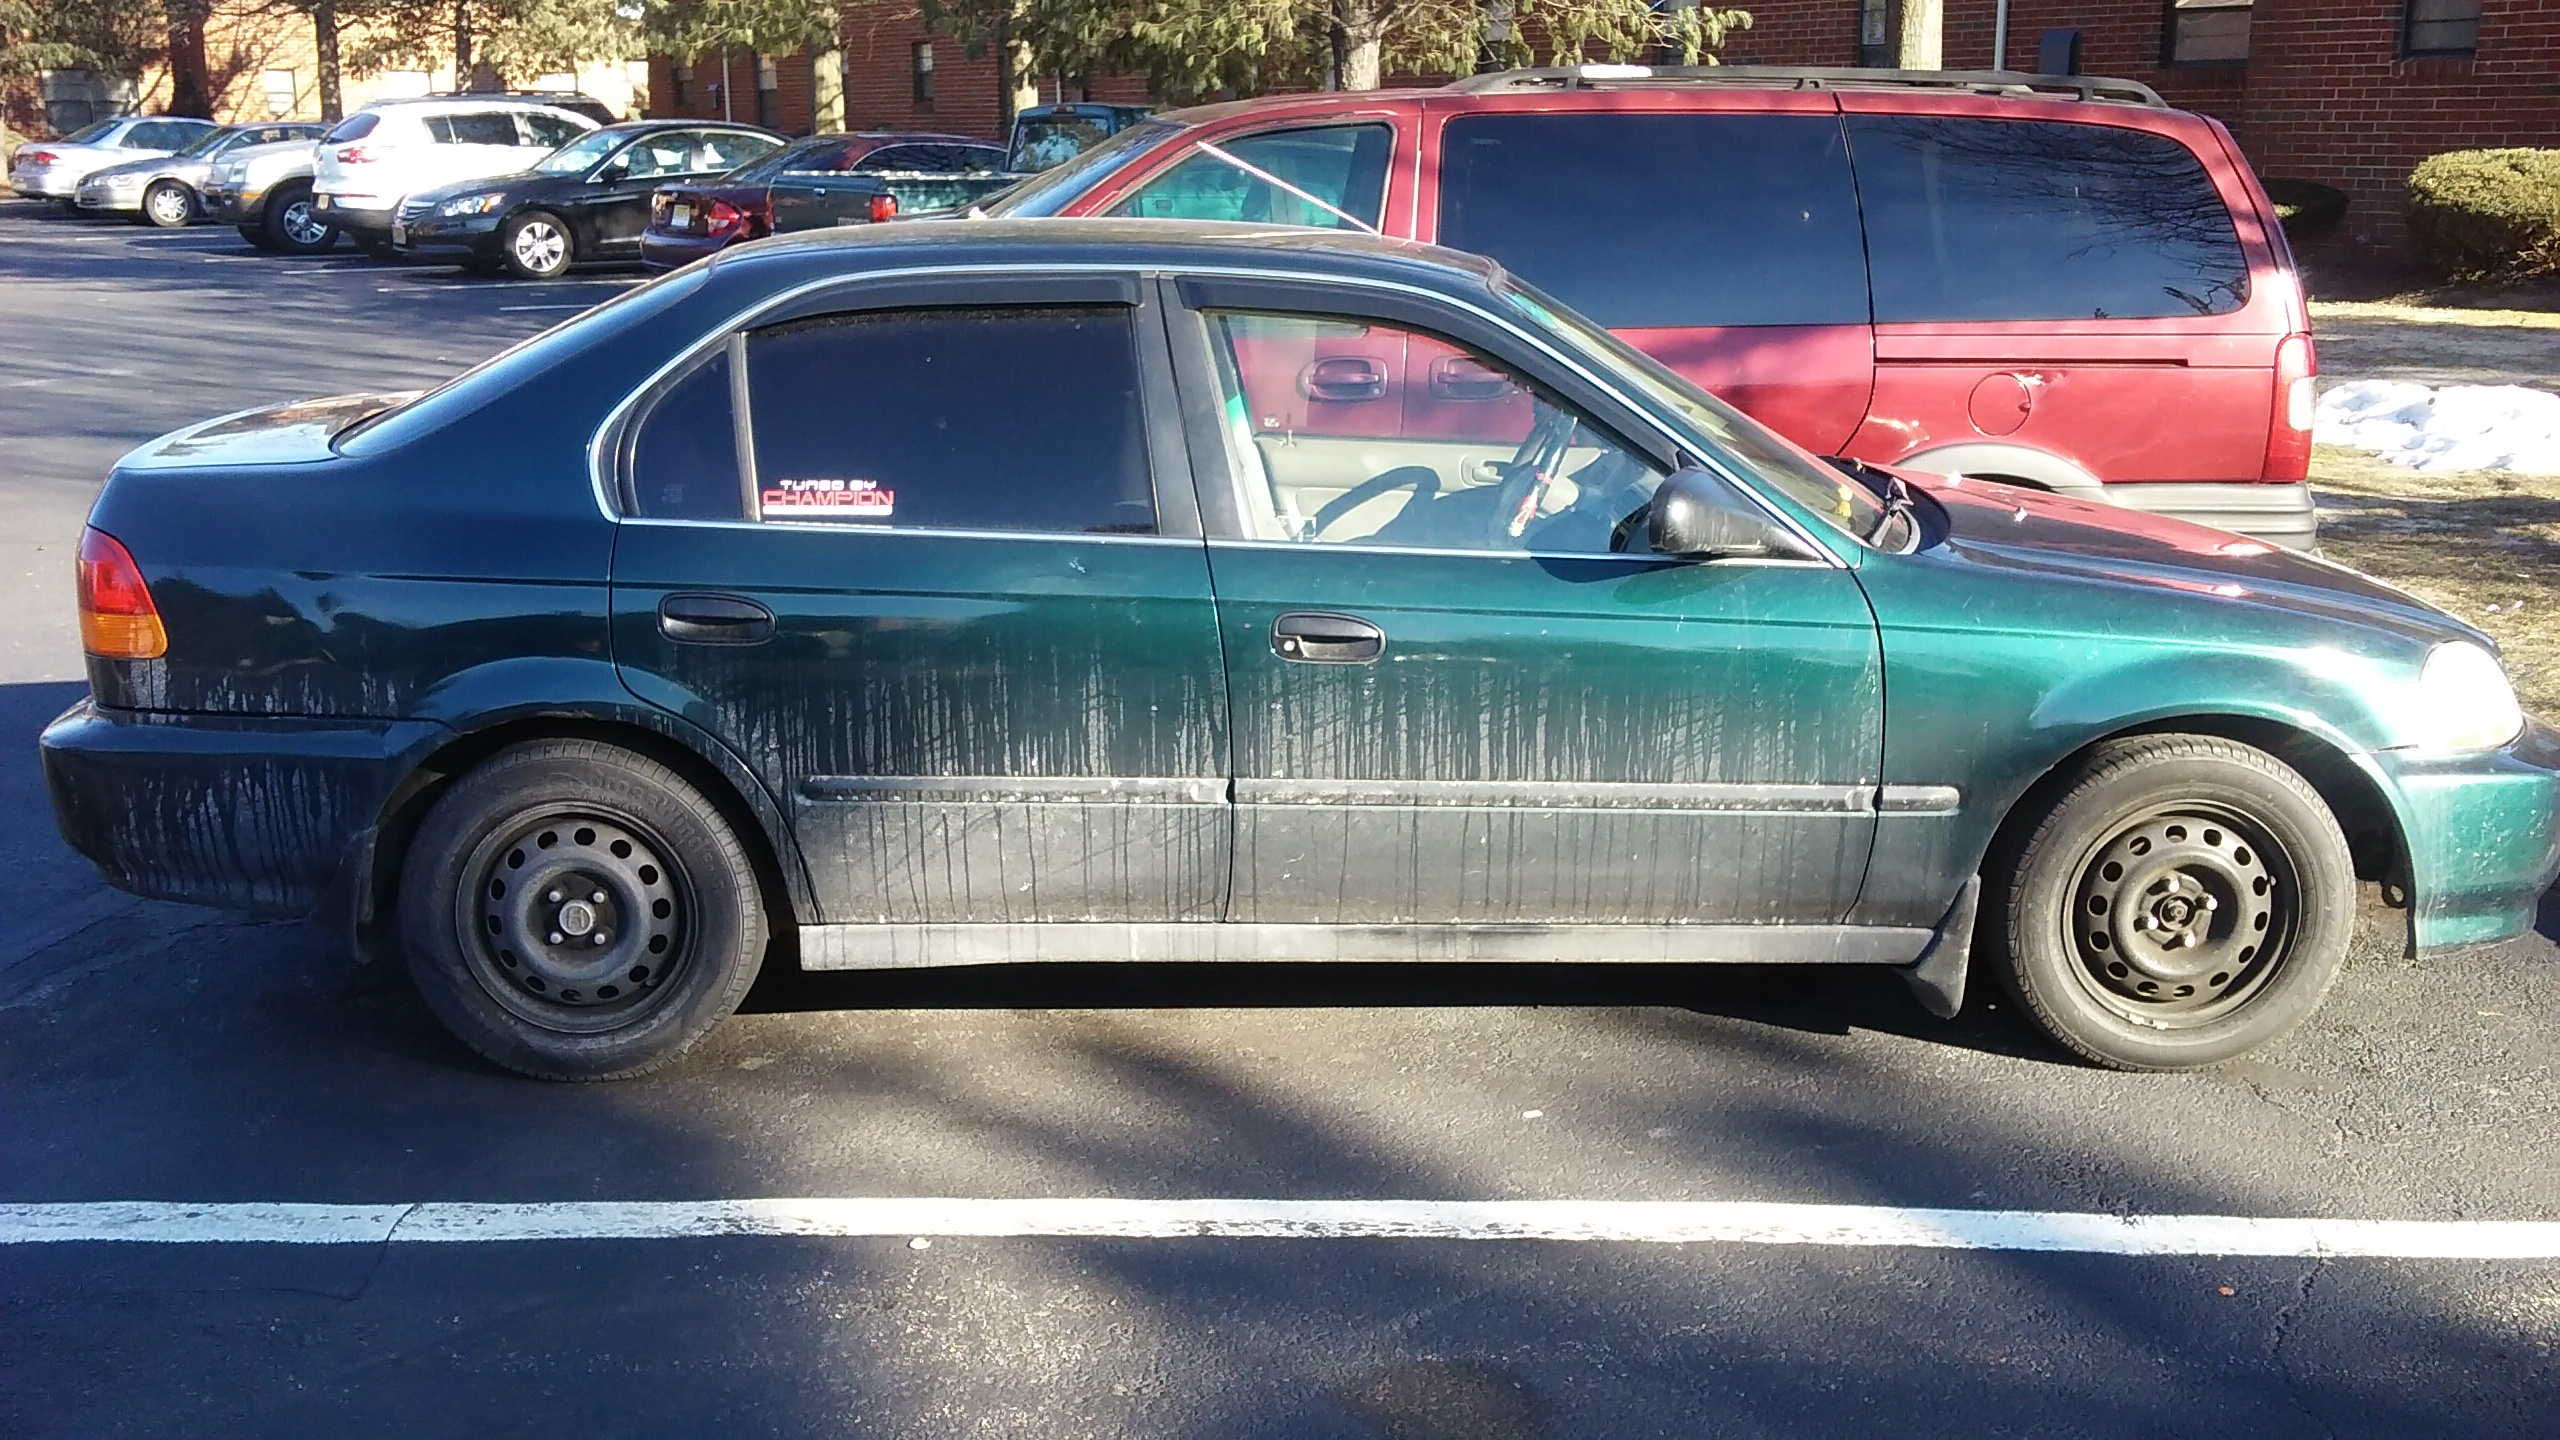 Cash for Cars Lancaster, PA | Sell Your Junk Car | The Clunker Junker